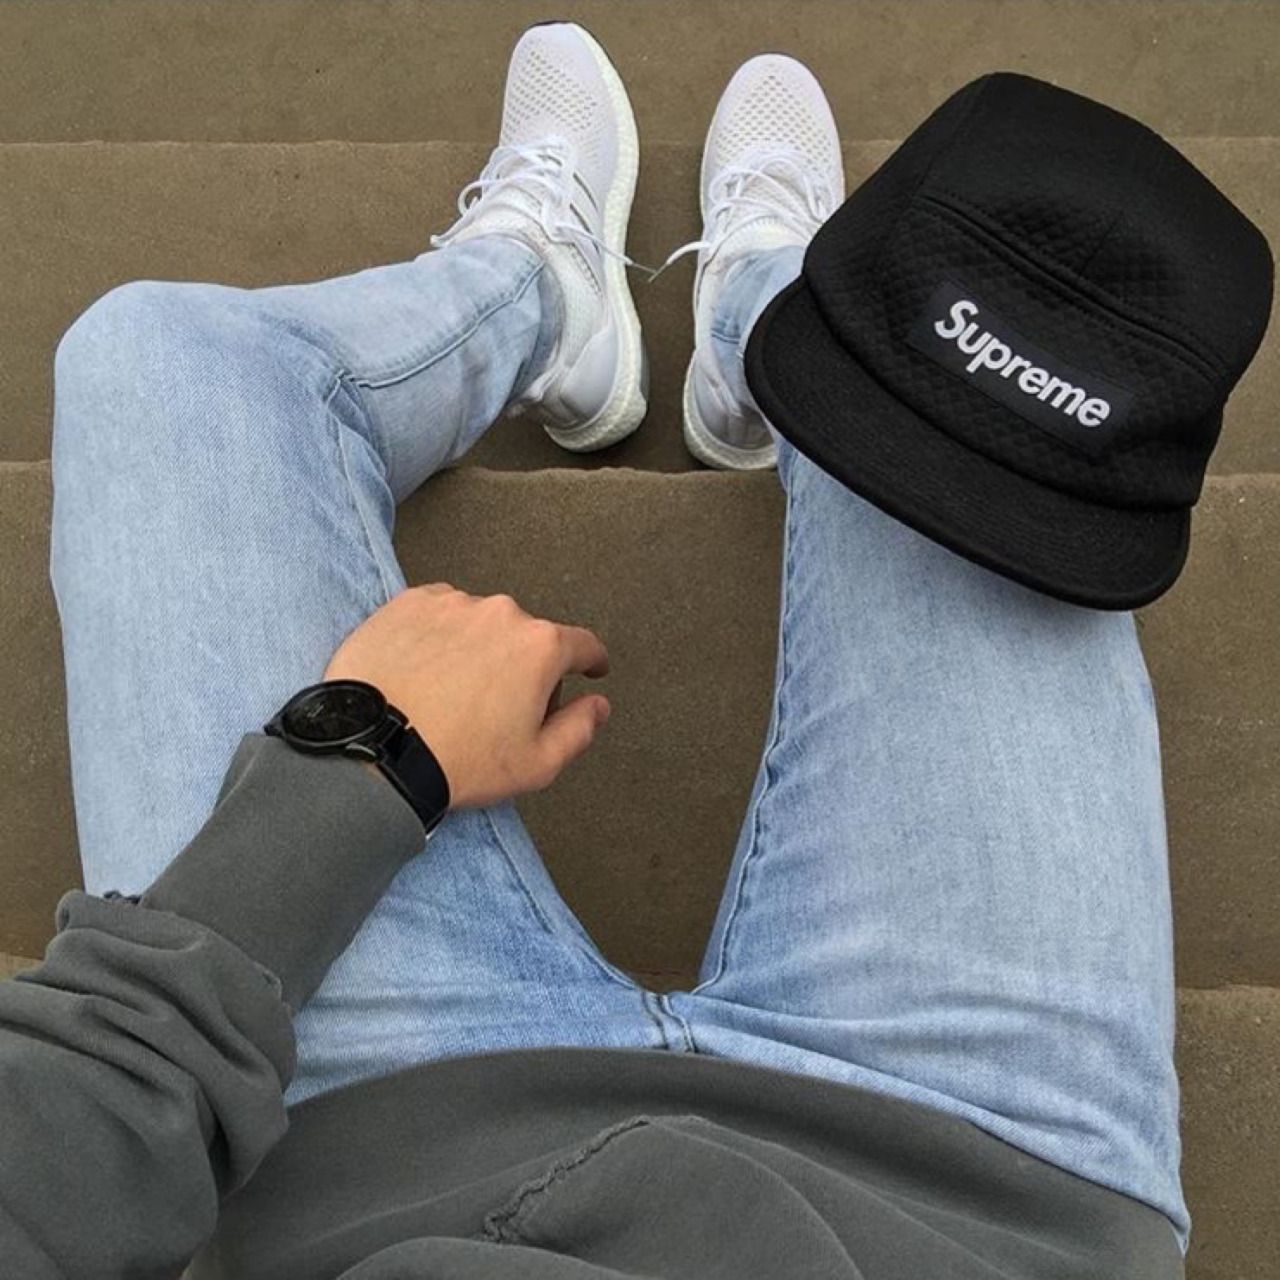 siglo Nido personaje  22 Ways to Wear Adidas Ultra Boost Sneaker | Mens outfits, Mens clothing  styles, Adidas ultra boost men